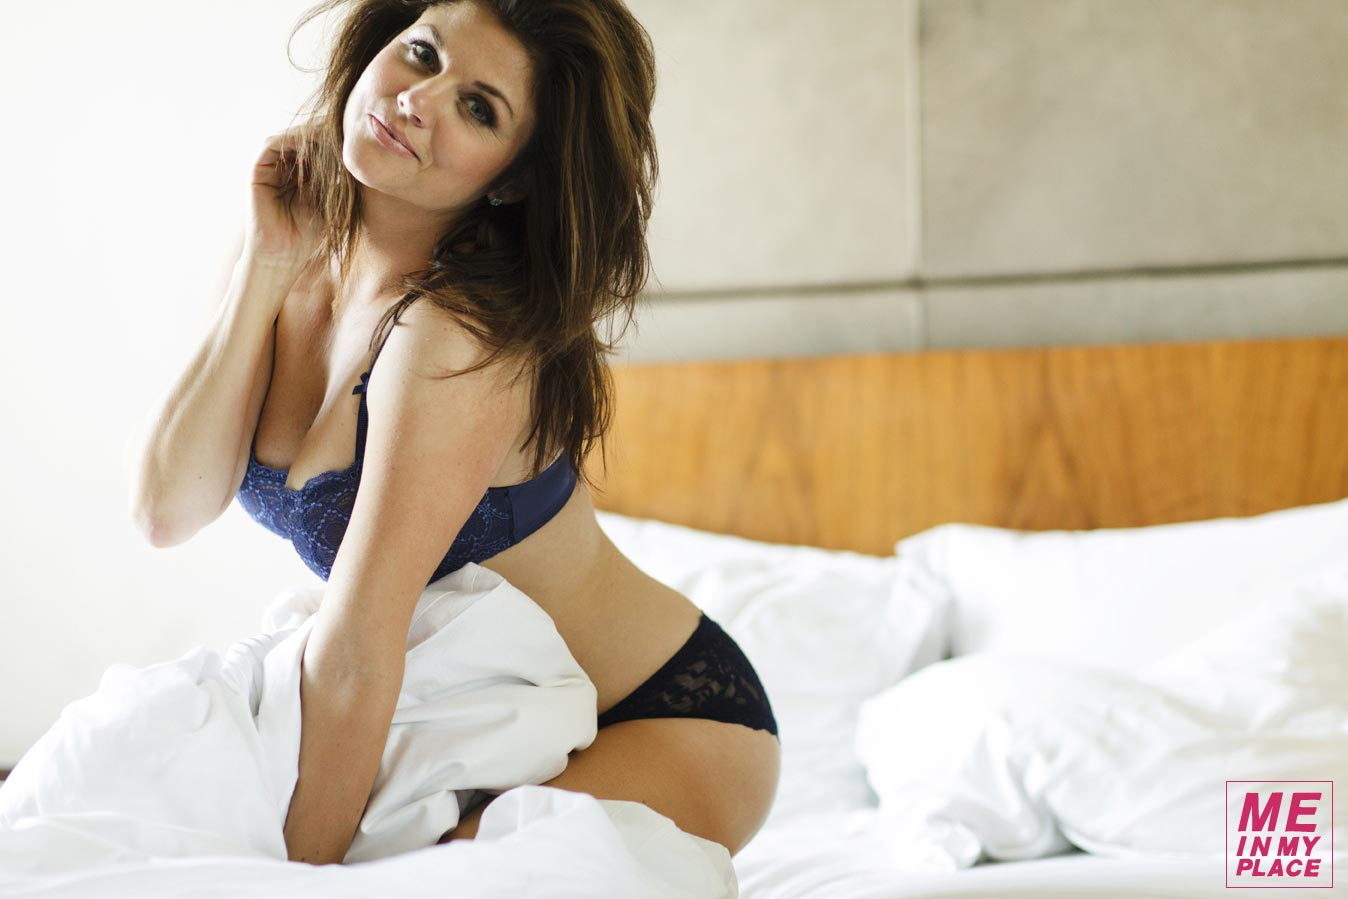 Tiffani Thiessen Esquire   s    Me In My Place    PhotoshootTiffani Thiessen 2013 Me In My Place